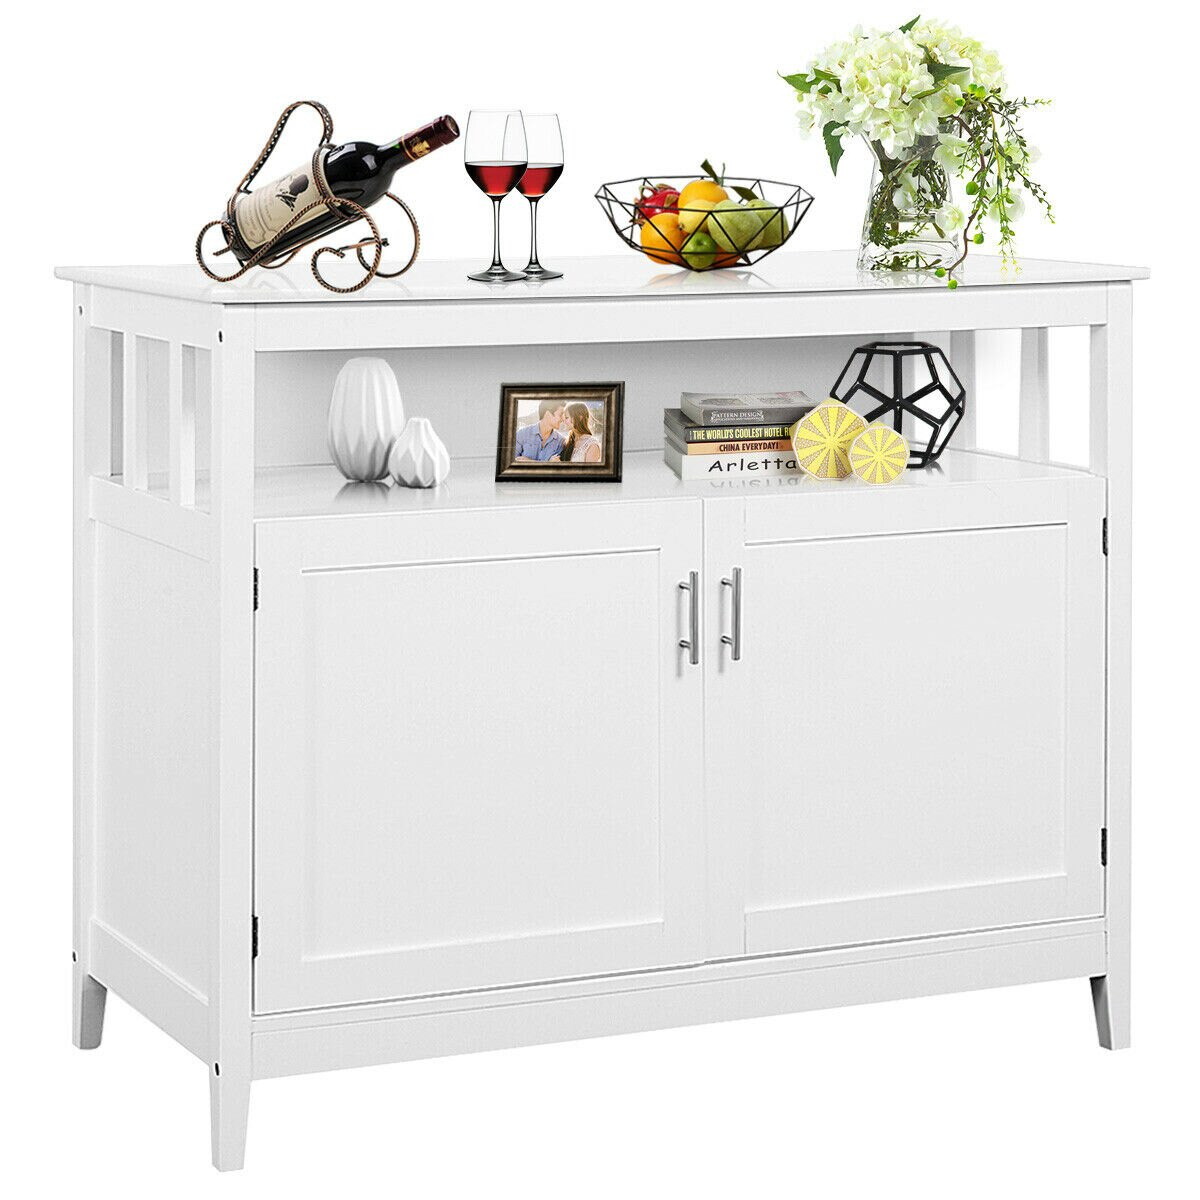 Costway: Costway Modern Kitchen Storage Cabinet Buffet Server Table Sideboard Dining Wood White   Rakuten Inside Contemporary Multi Storage Dining Buffets (View 1 of 30)